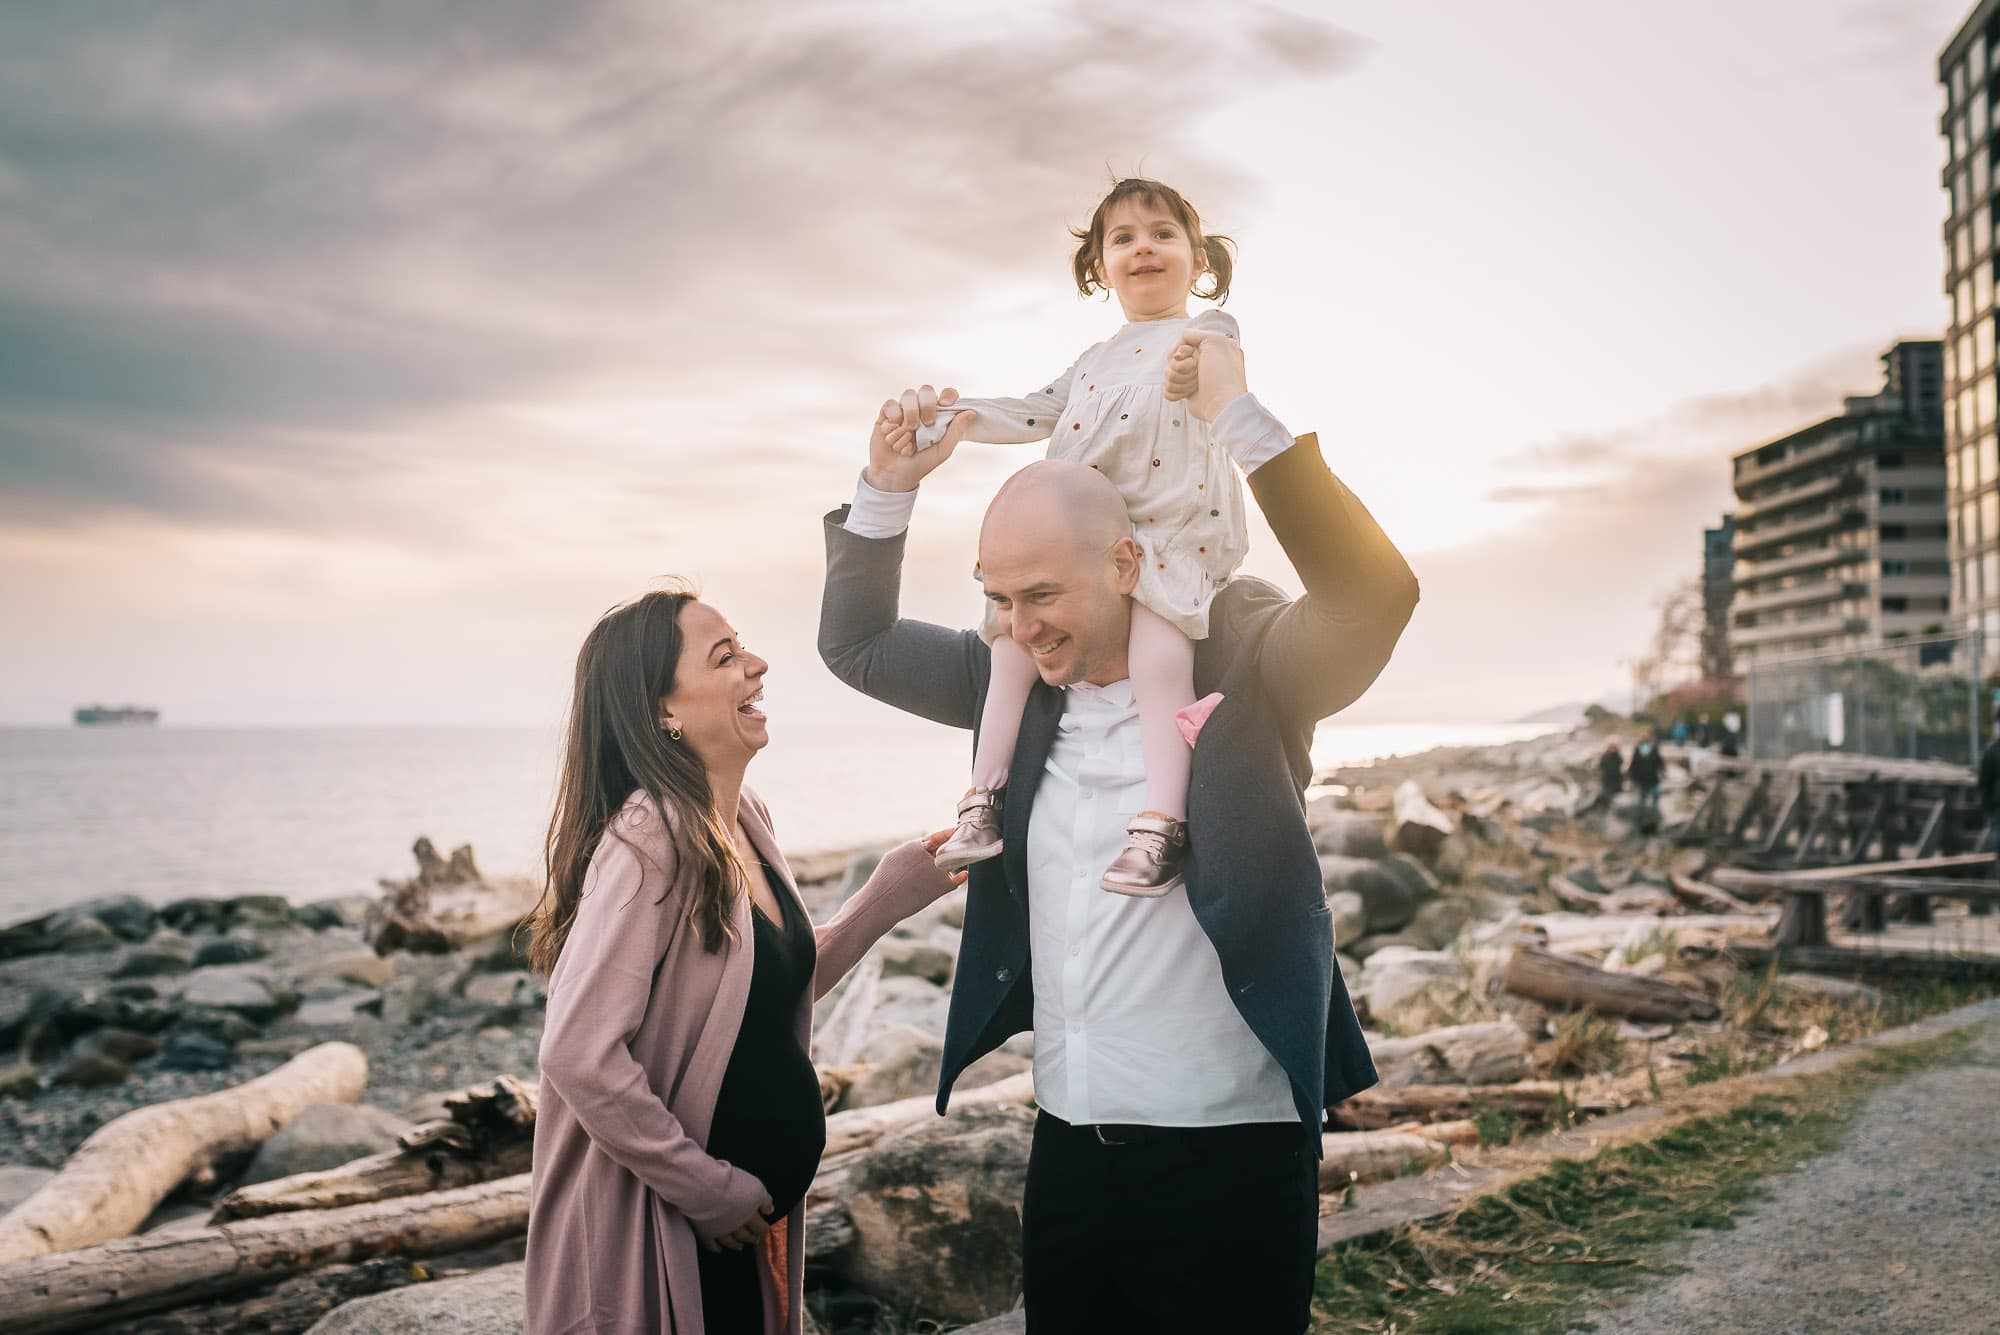 sunset family photos in Vancouver with girl on dad's neck